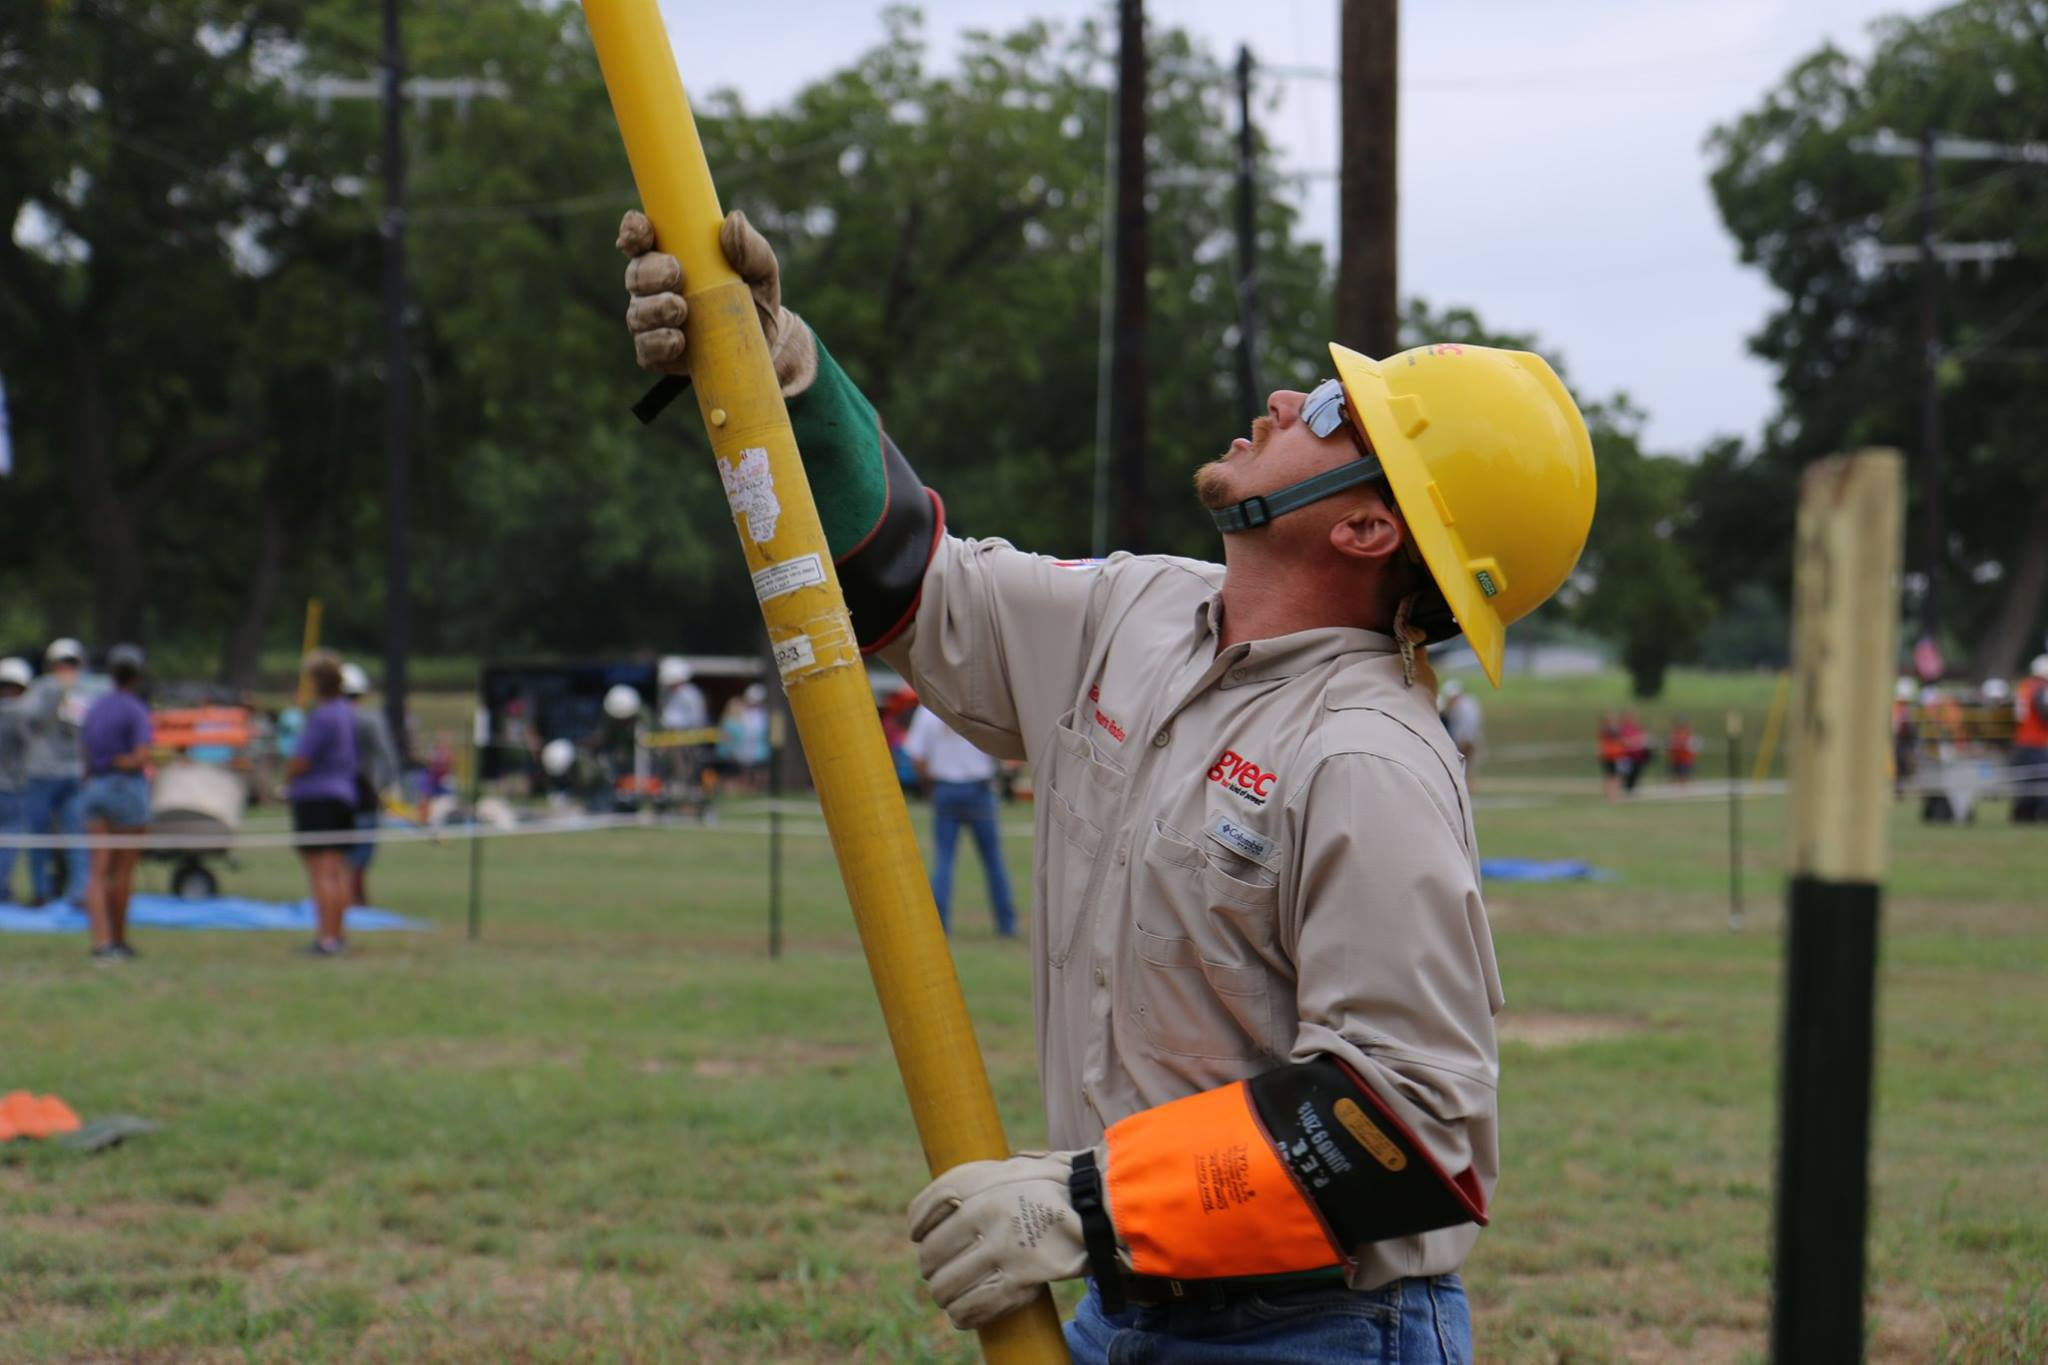 Apprentice lineman event